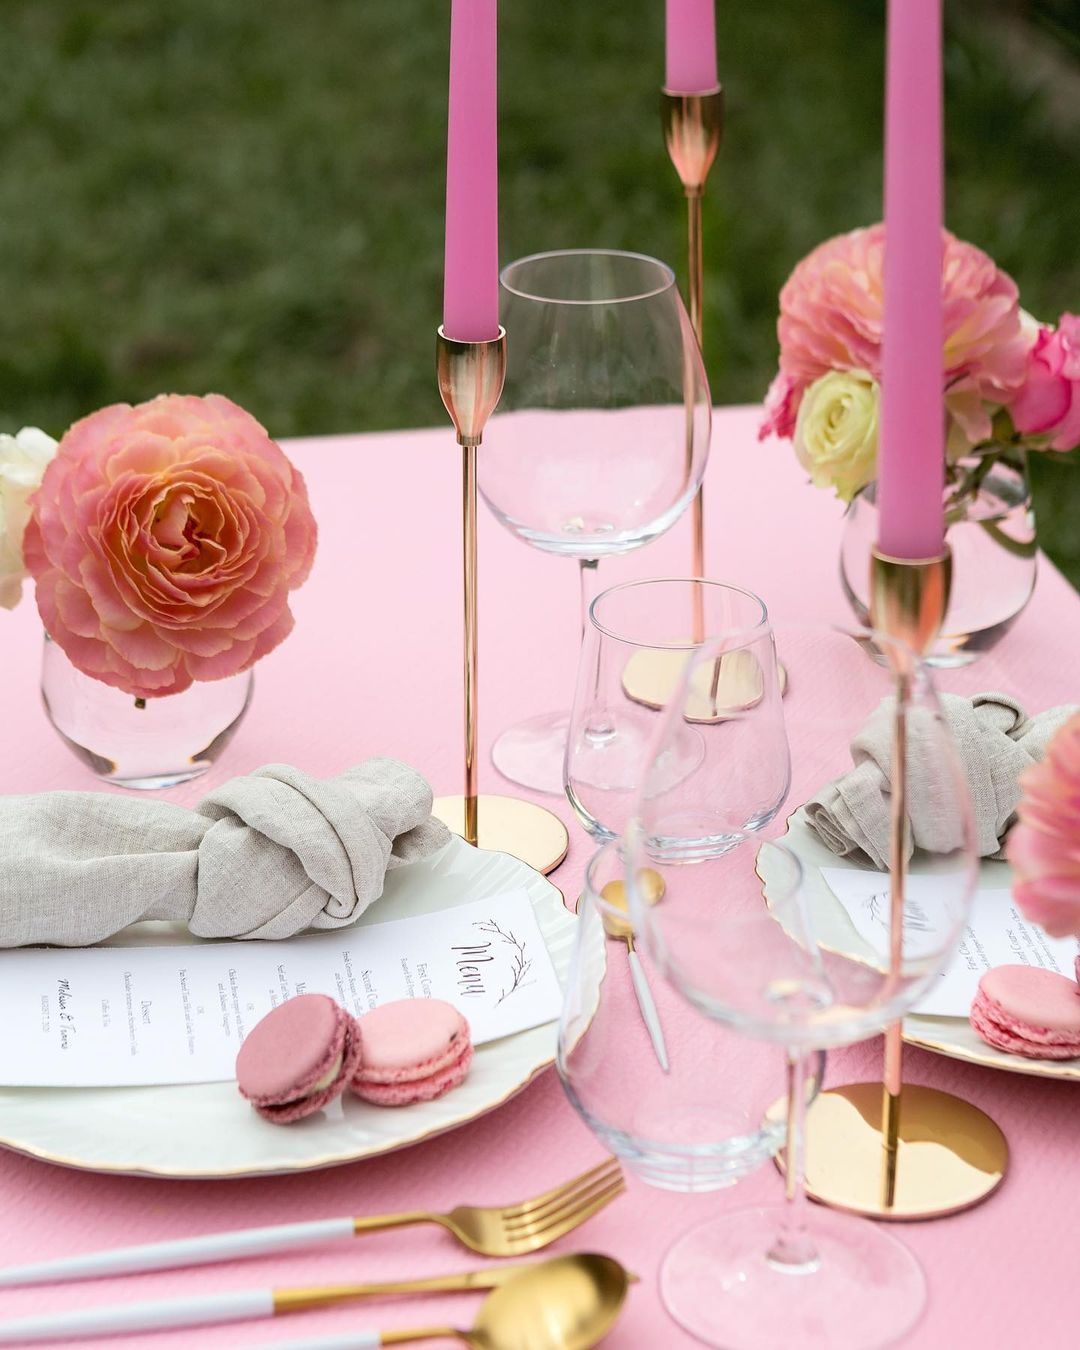 Pink Flowers, Pink Candles, And Pink Macarons